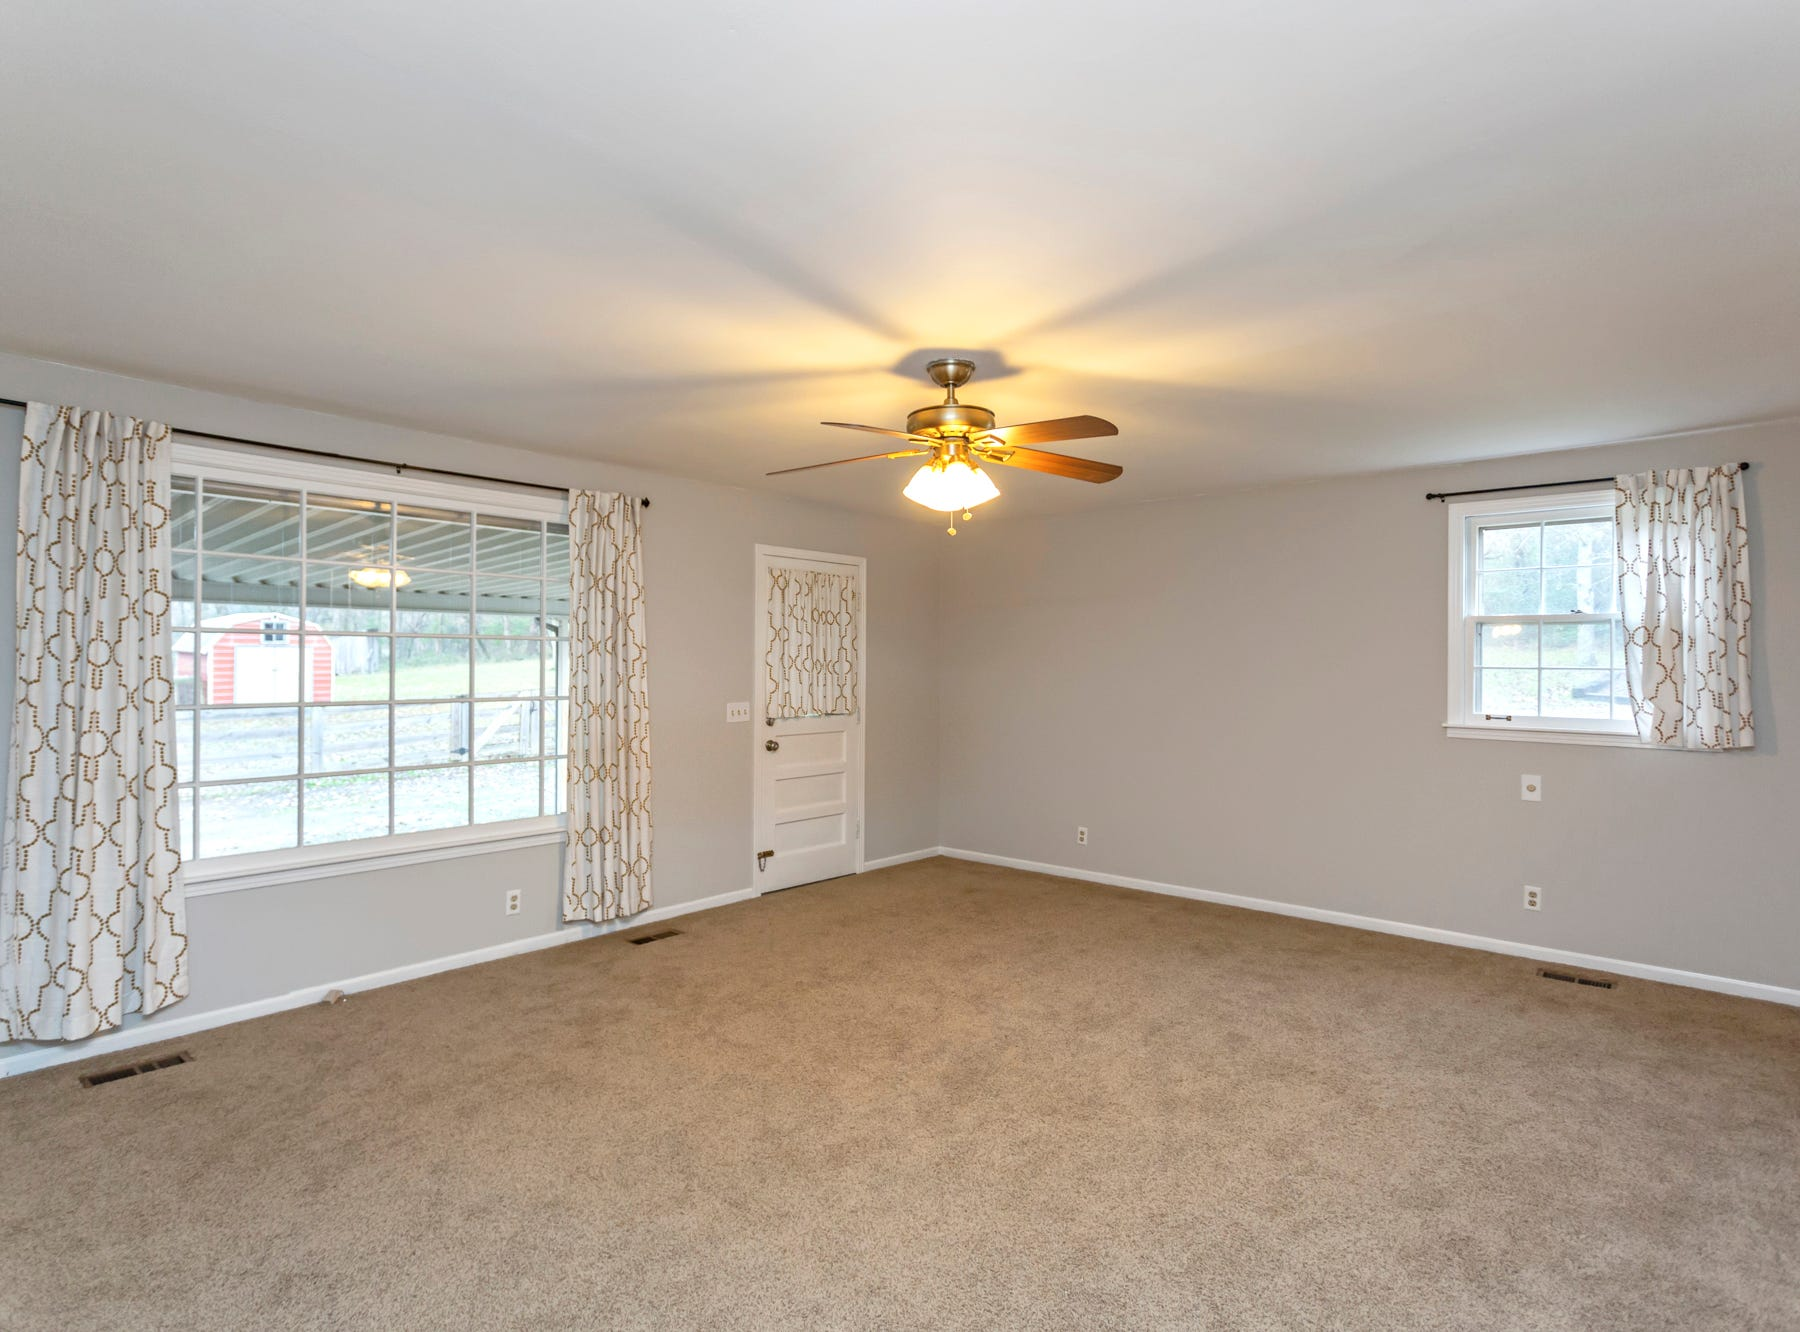 The master bedroom space in the home for sale at 3038 Wilson Pike is empty, which can make it hard for potential home buyers to see how it would look furnished.